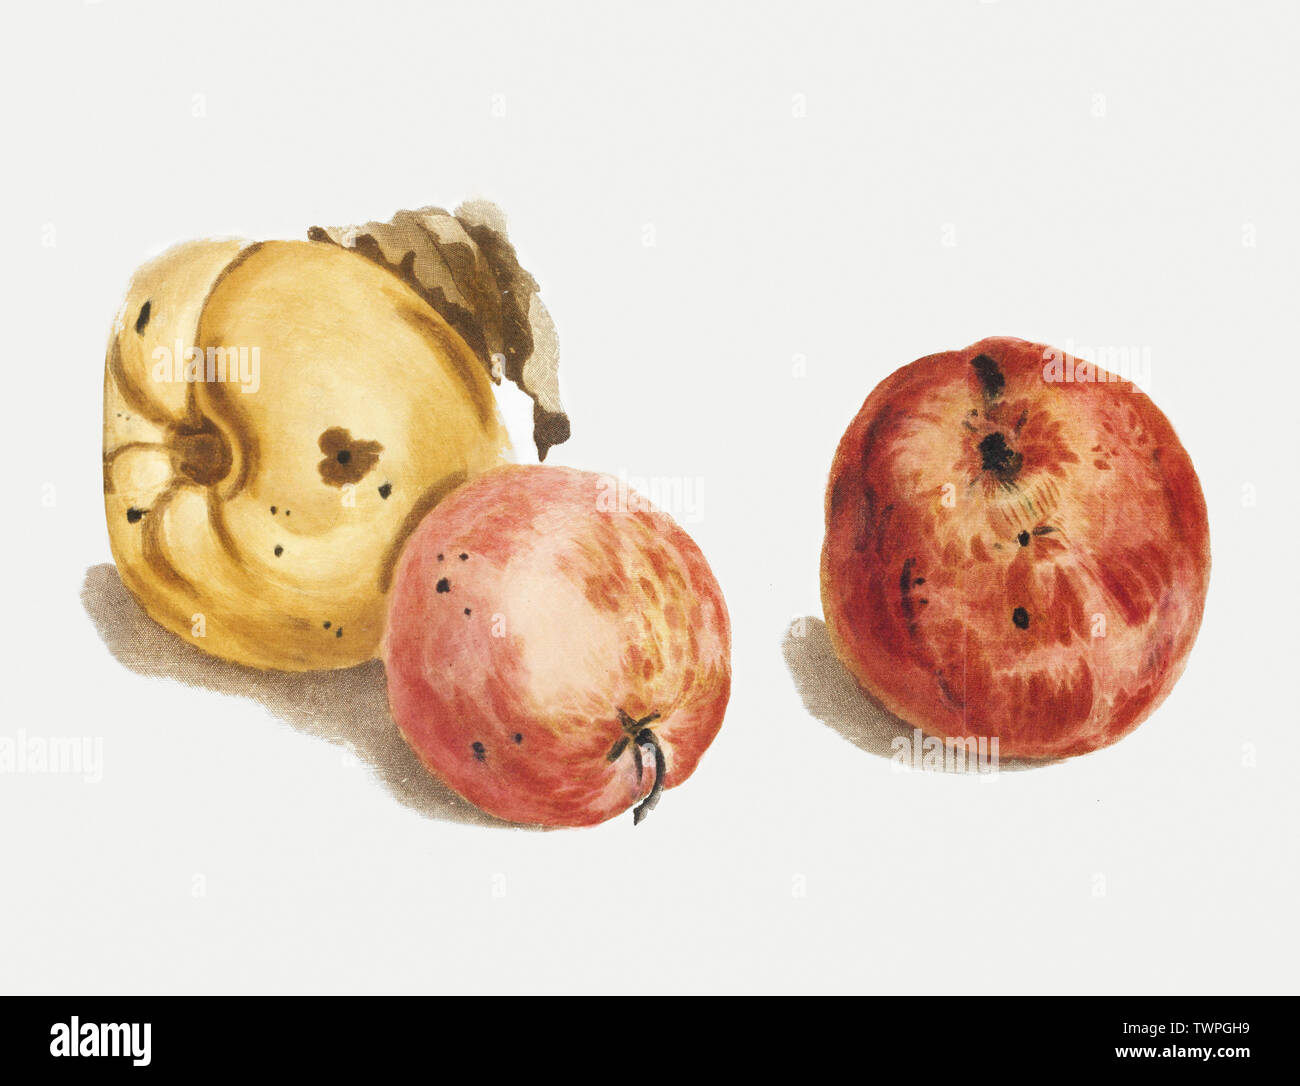 A quince and two apples by Johan Teyler (1648-1709). Original from the Rijks Museum. Digitally enhanced by rawpixel. - Stock Image